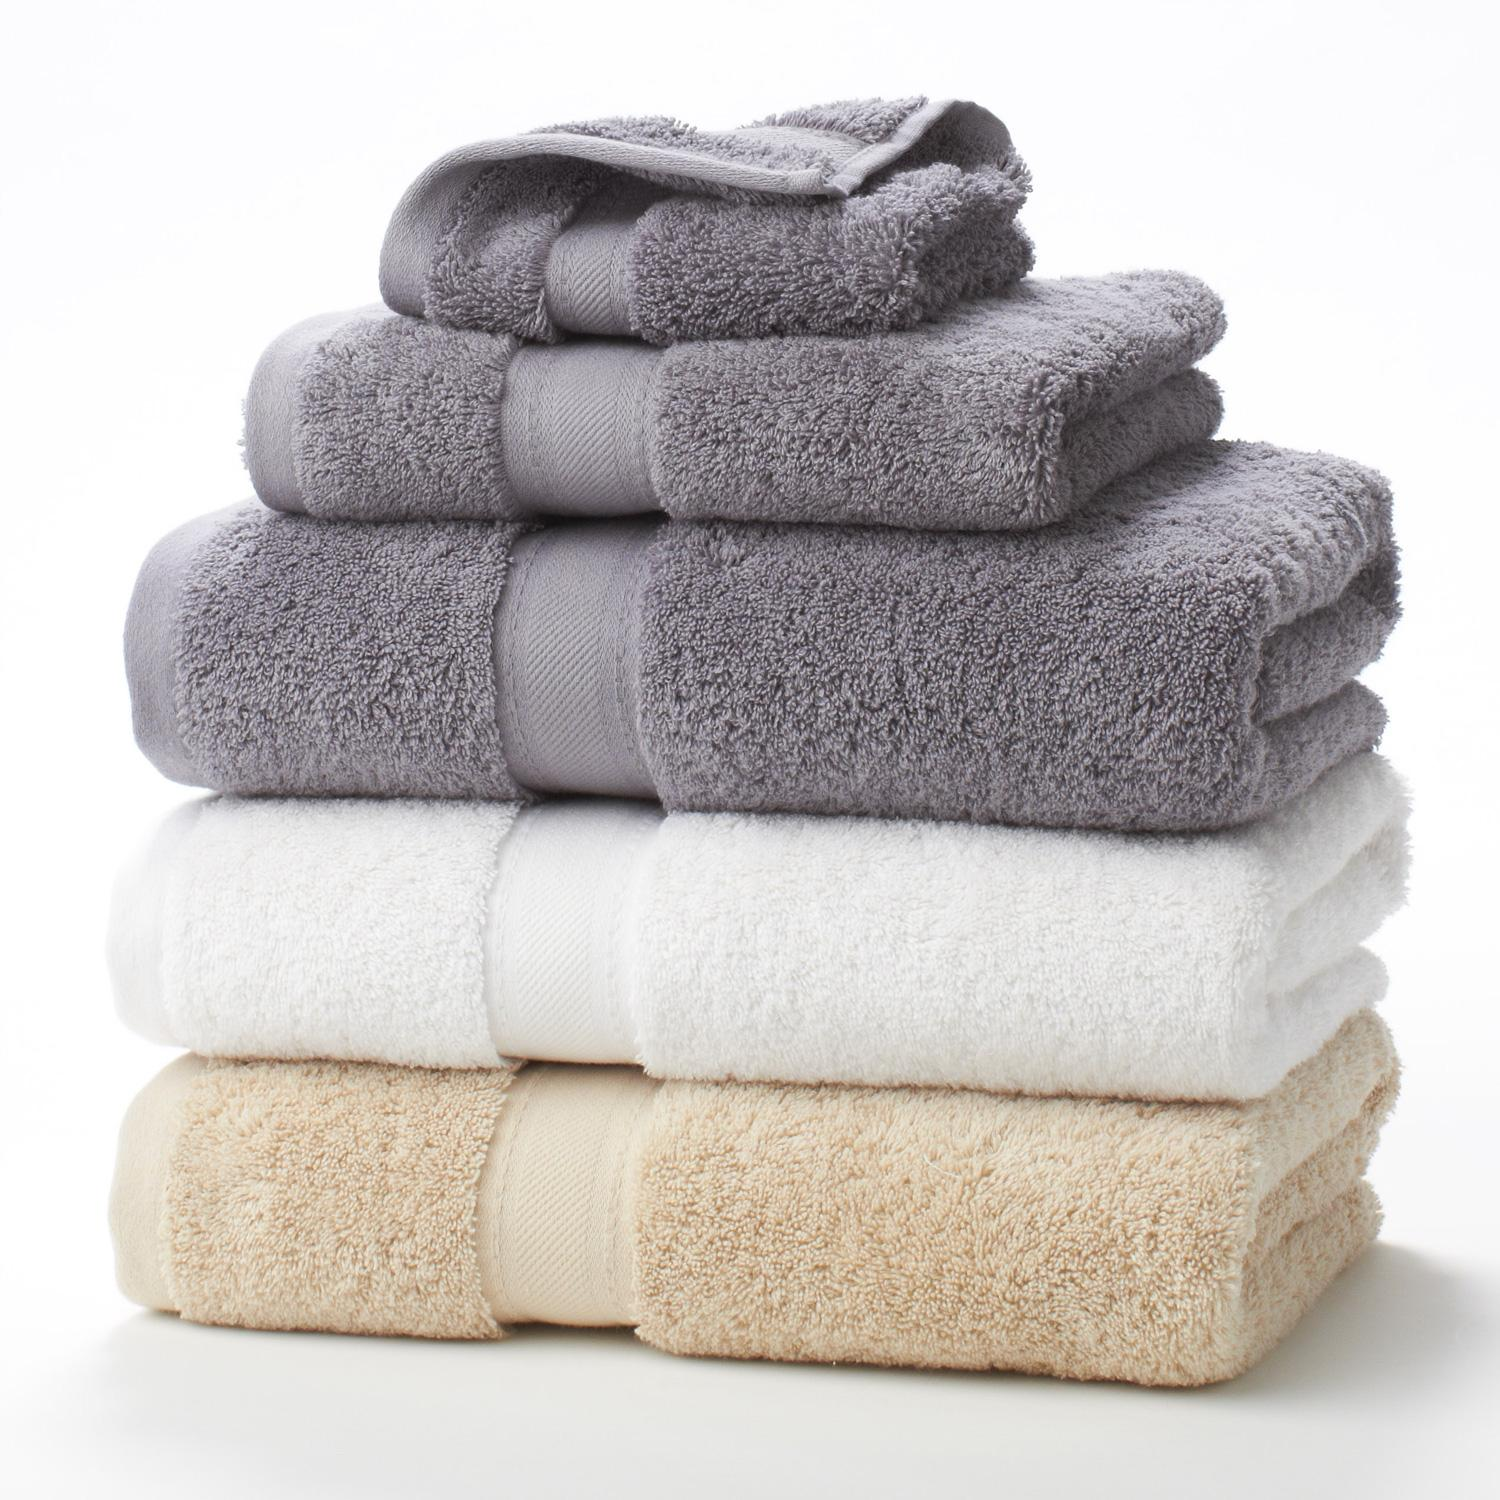 Luxury Cotton Cashmere Towel The Company Store